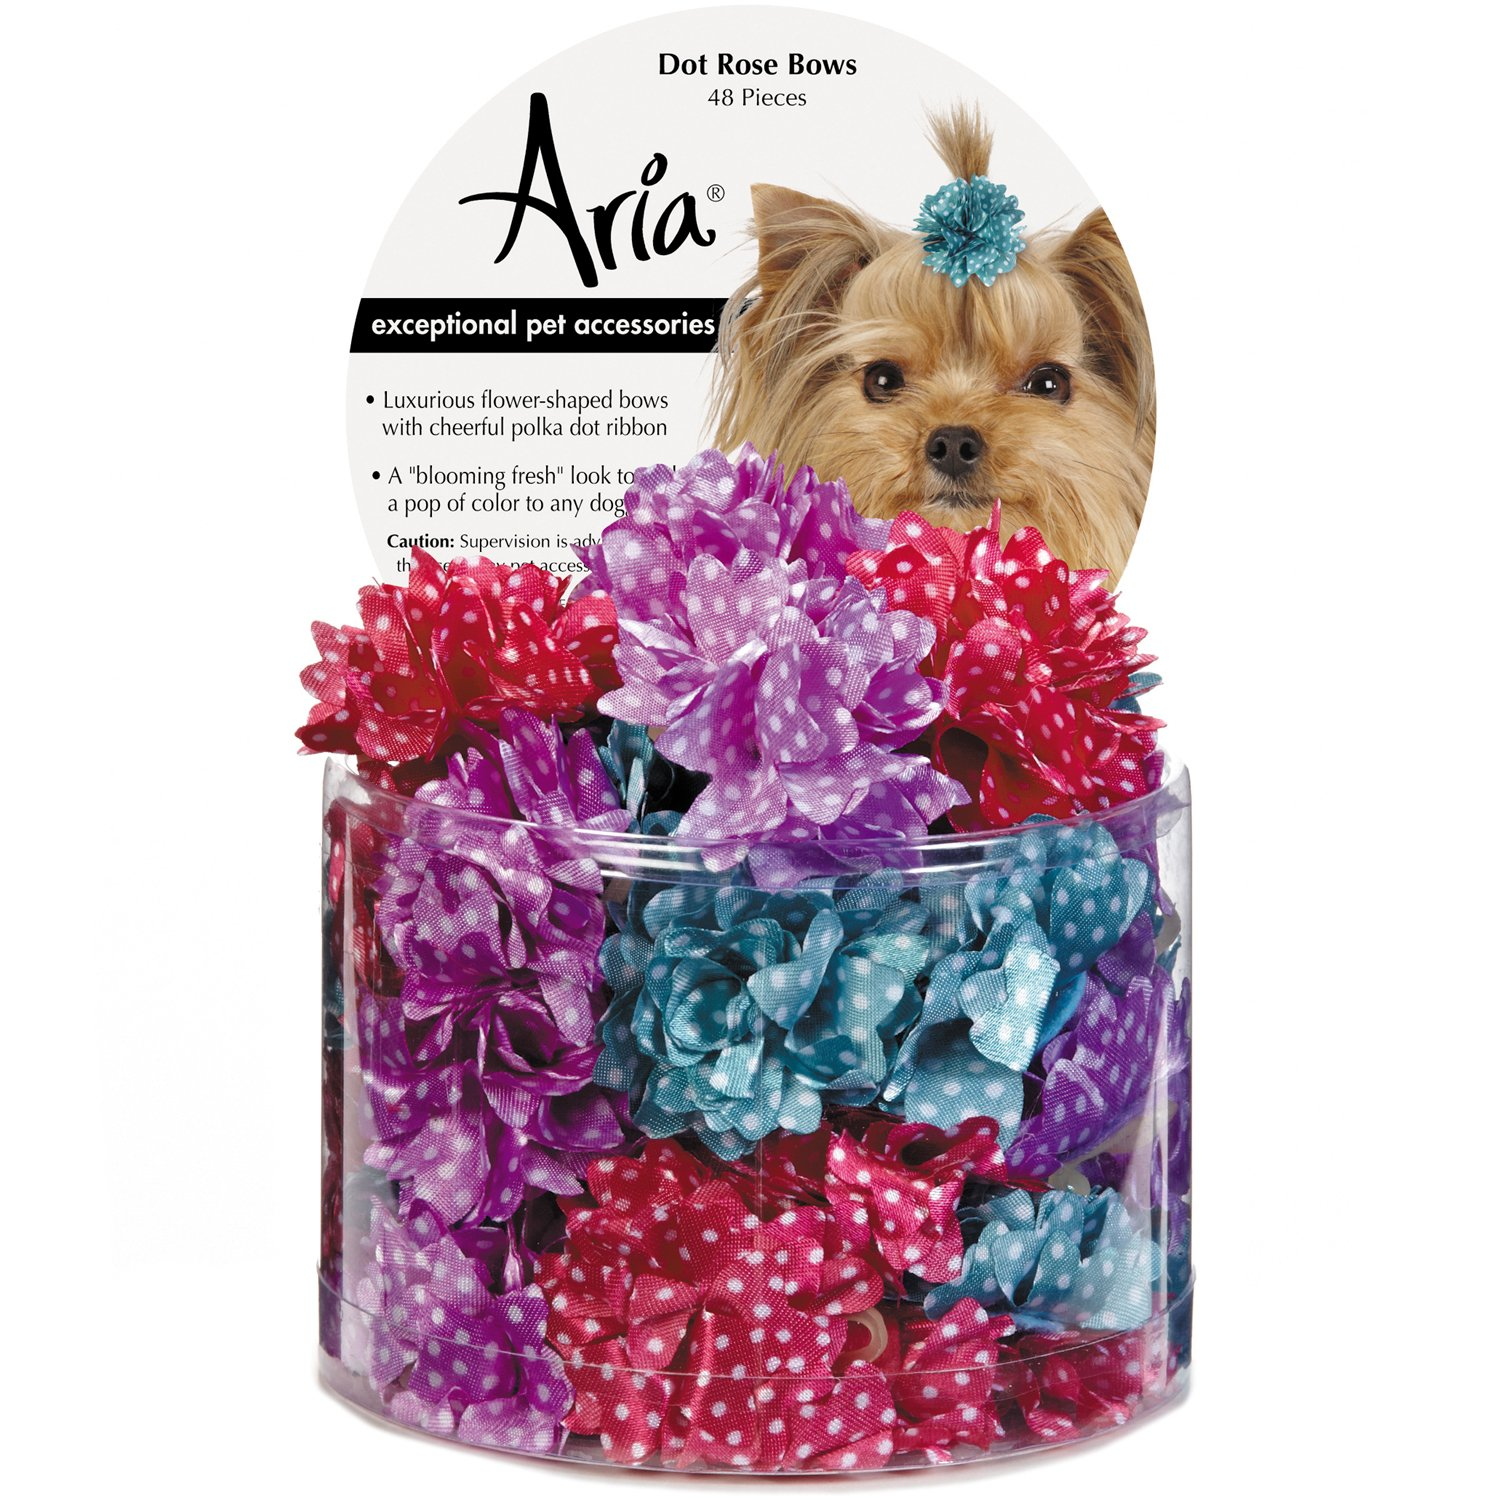 Aria Dot Rose 48 Piece Bows for Dogs by Aria